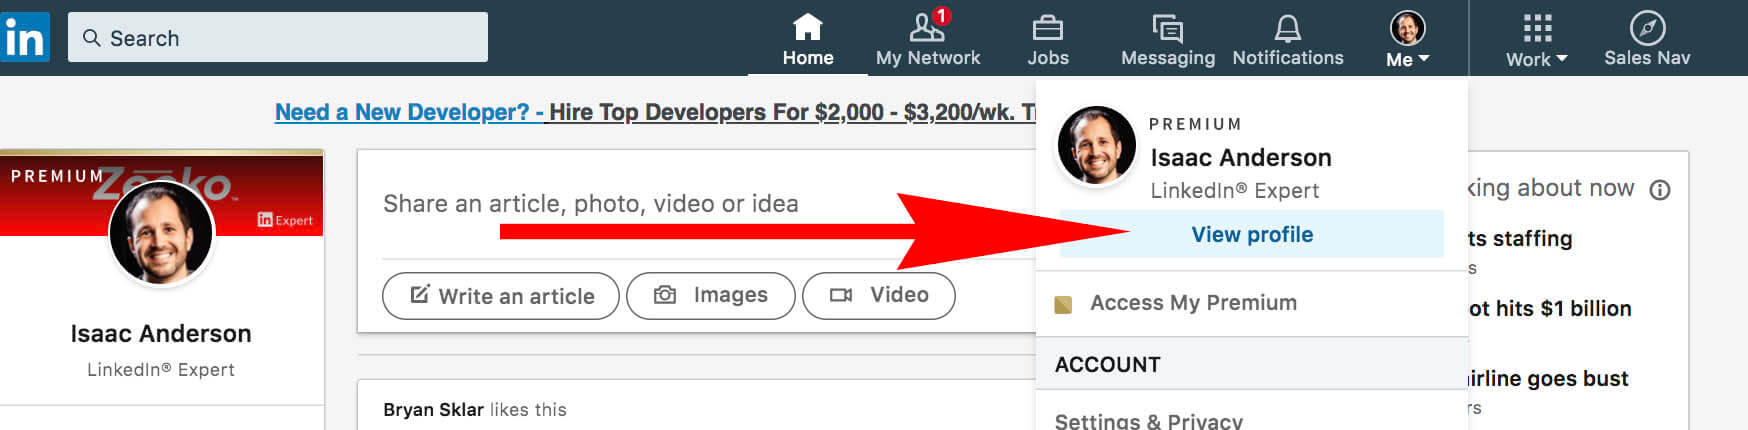 How to update and remove interests on Linkedin - view profile